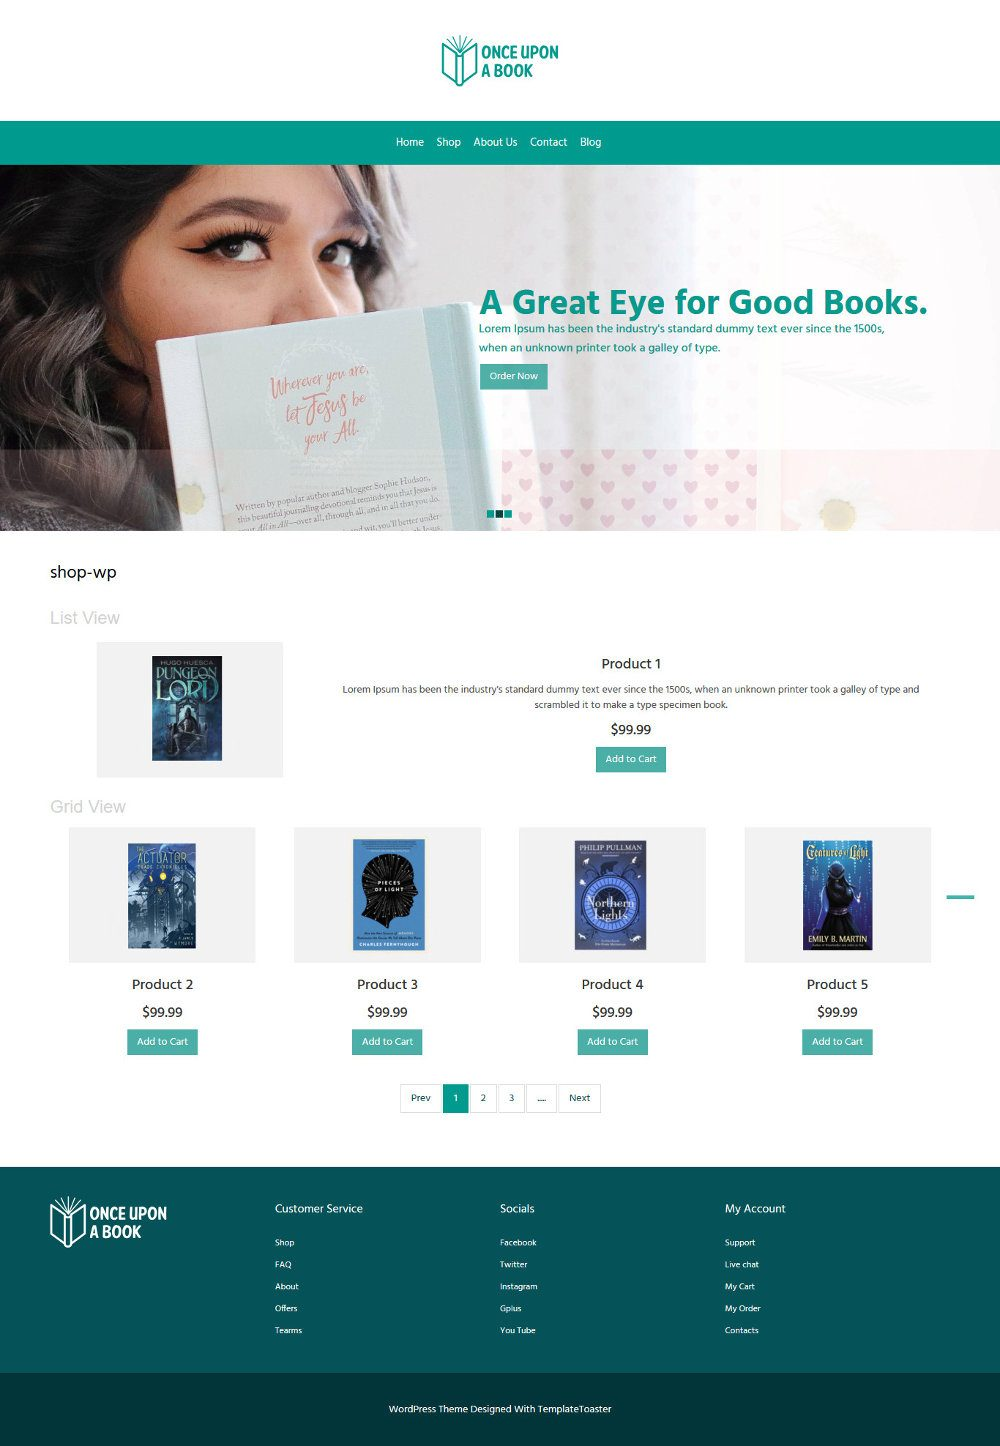 Once Upon a Book Online Book Store WooCommerce Theme